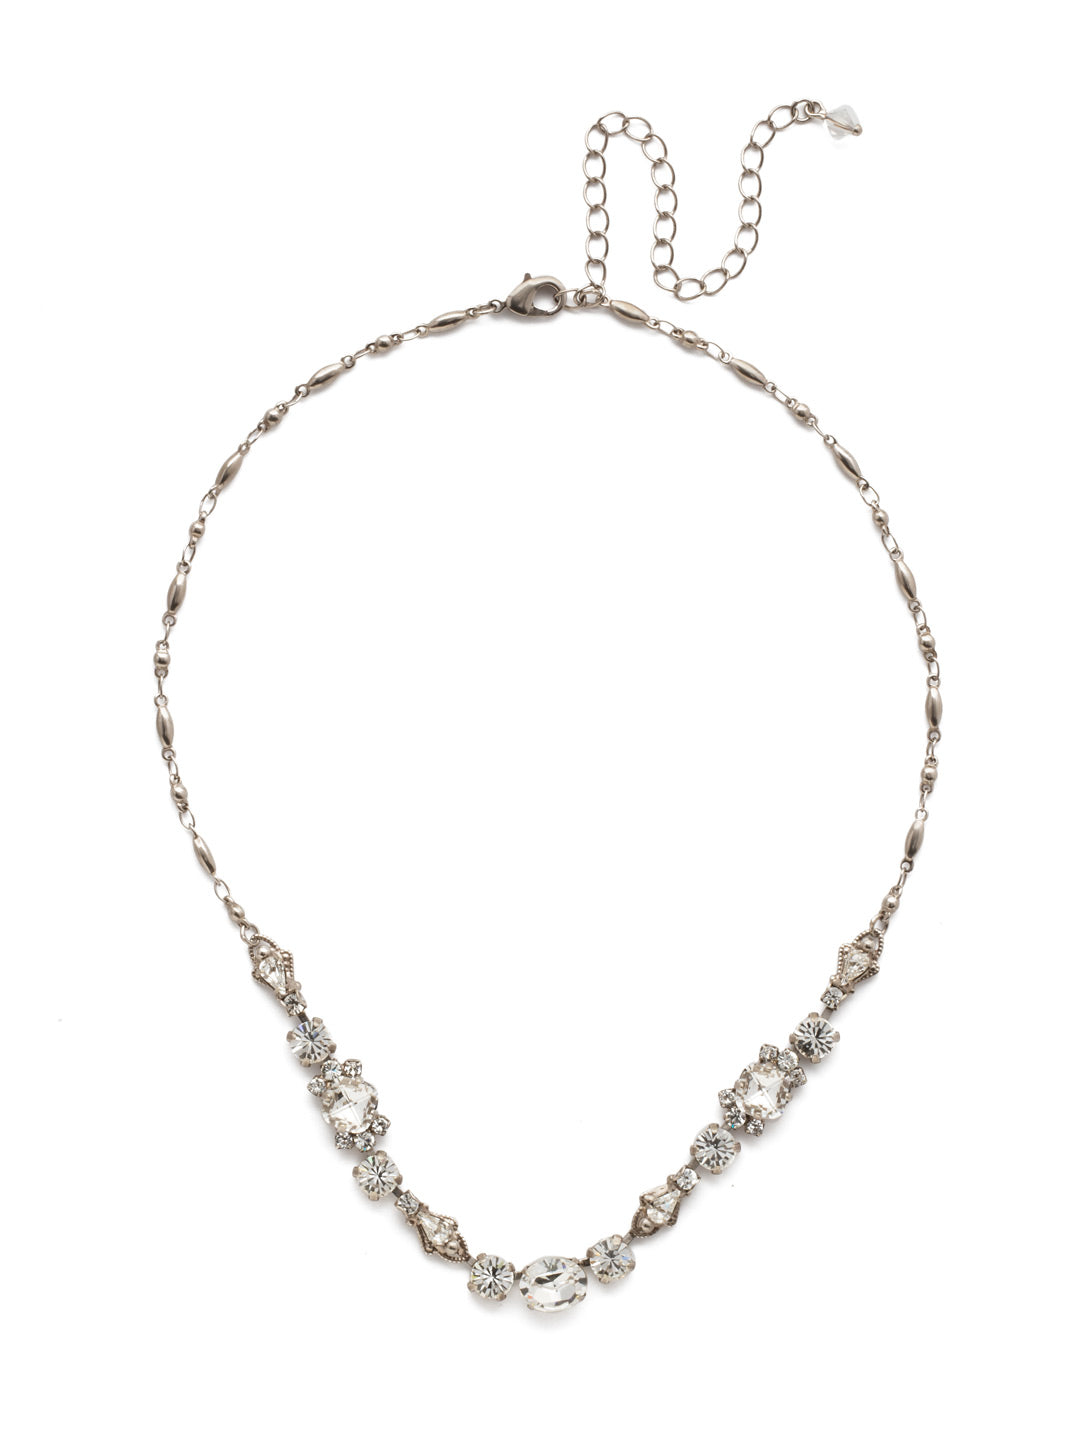 Saffron Tennis Necklace - NDS48ASCRY